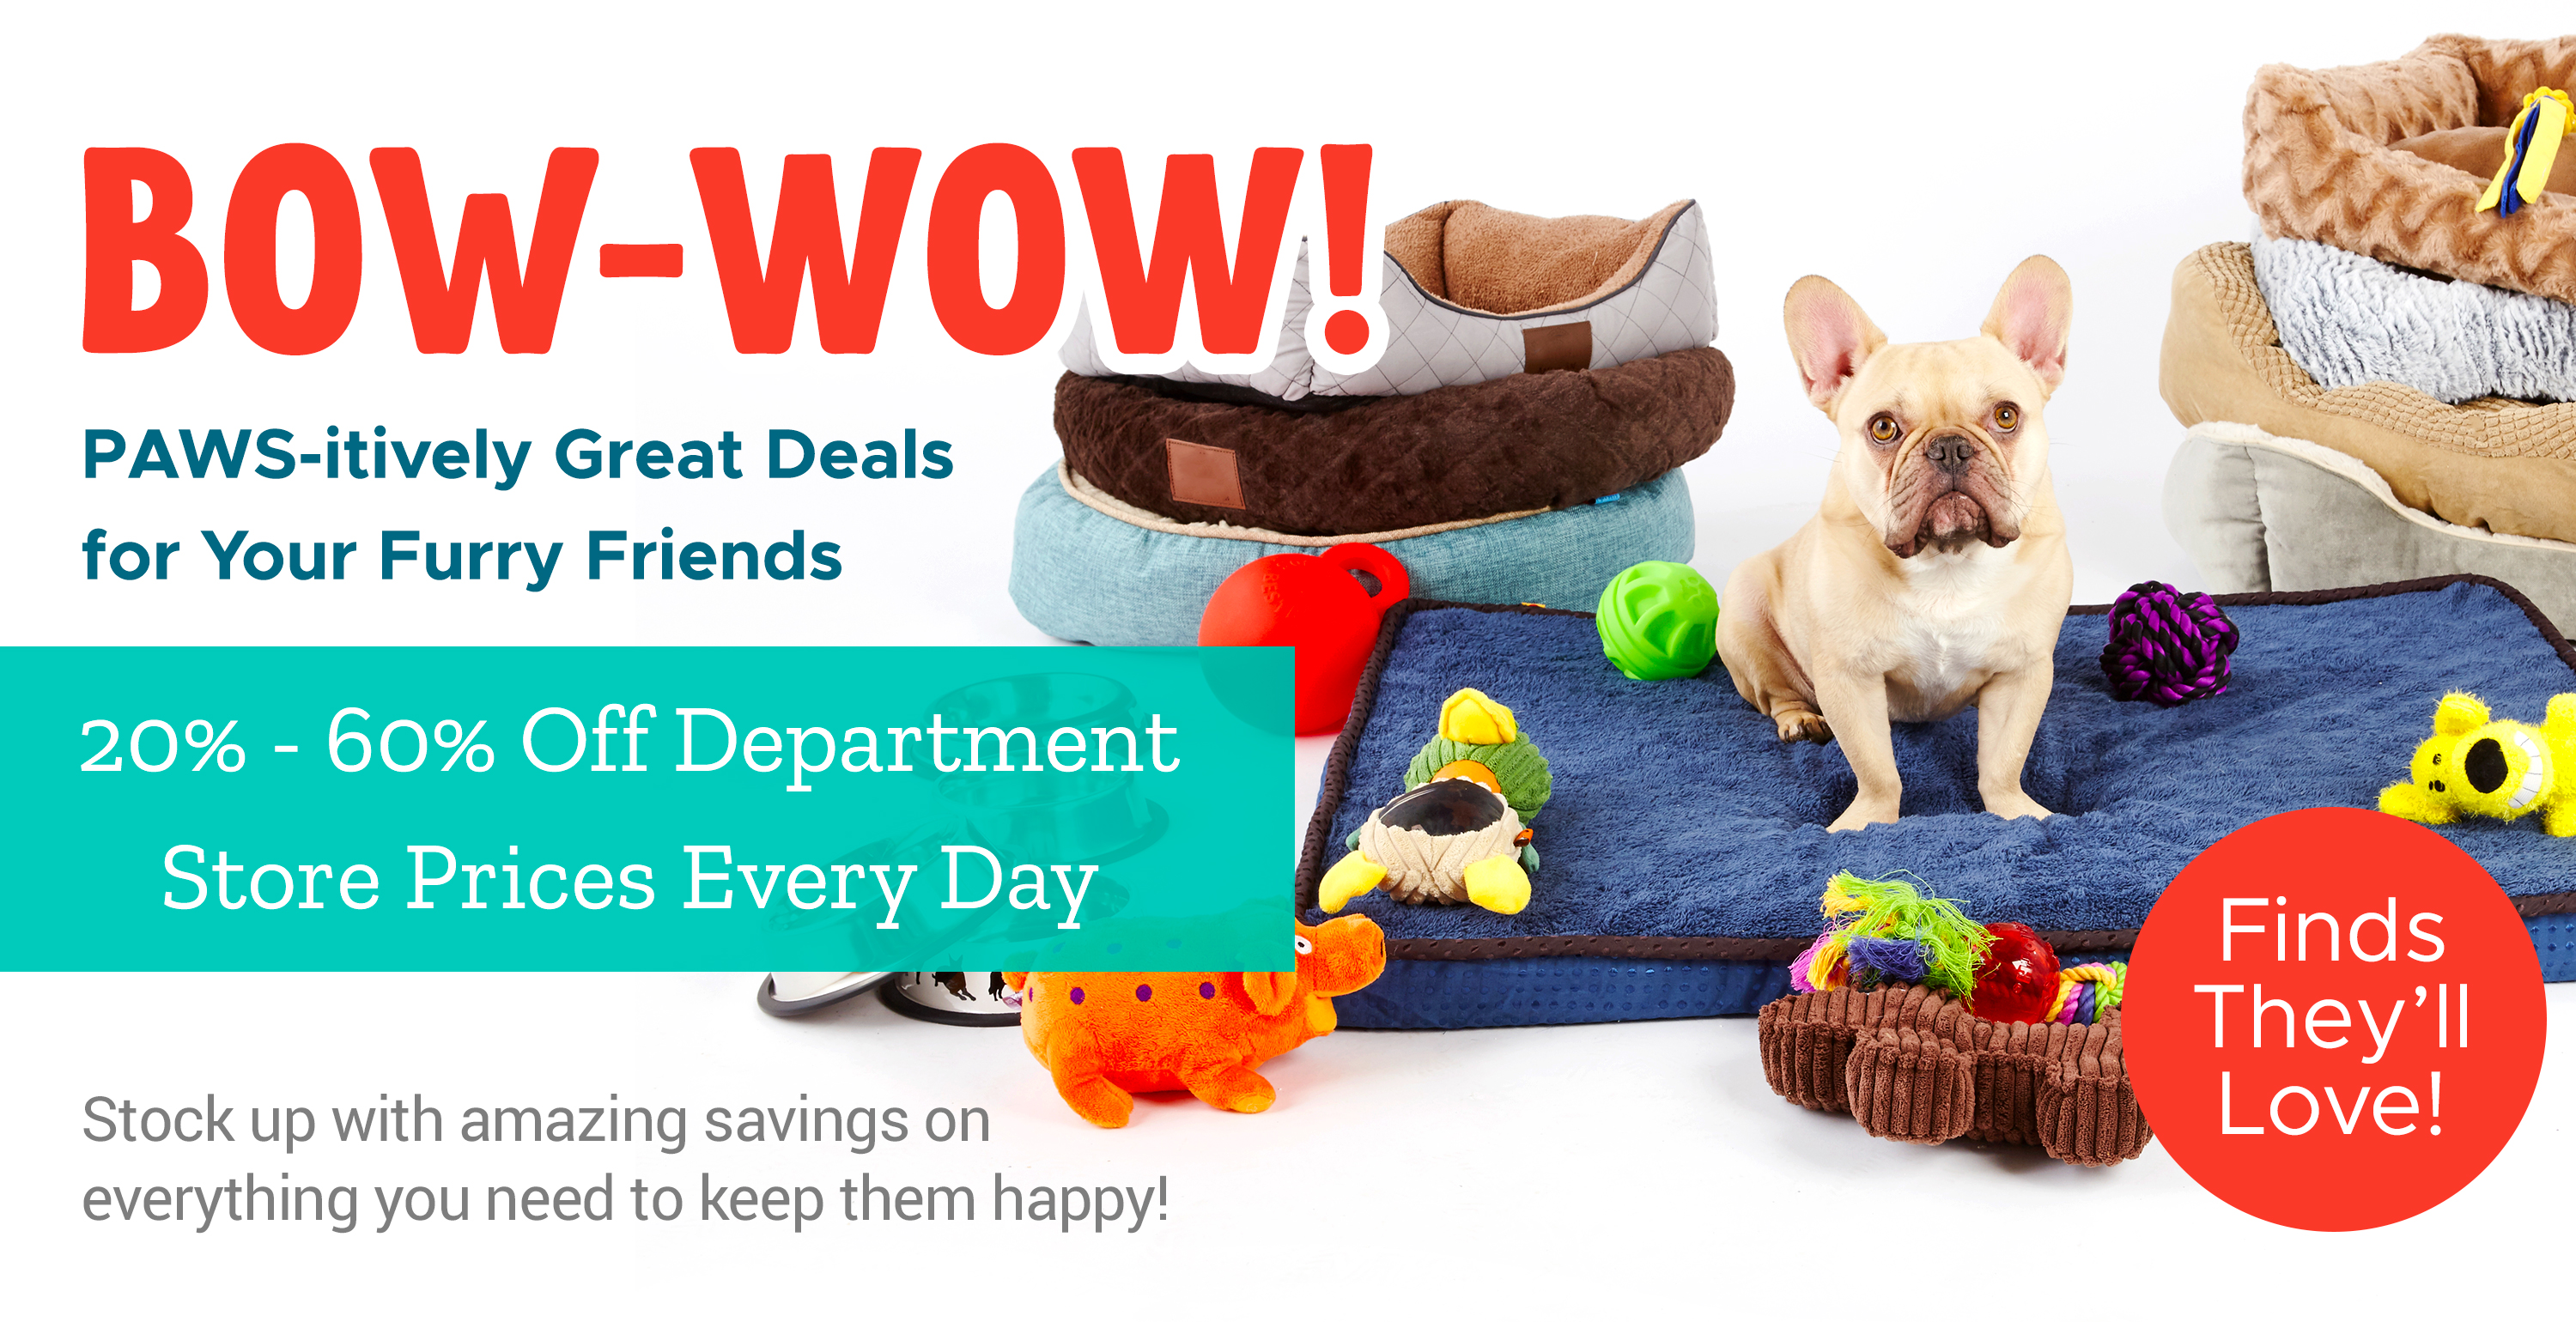 Bow-WOW! PAWS-itively Great Deals for Your Furry Friends